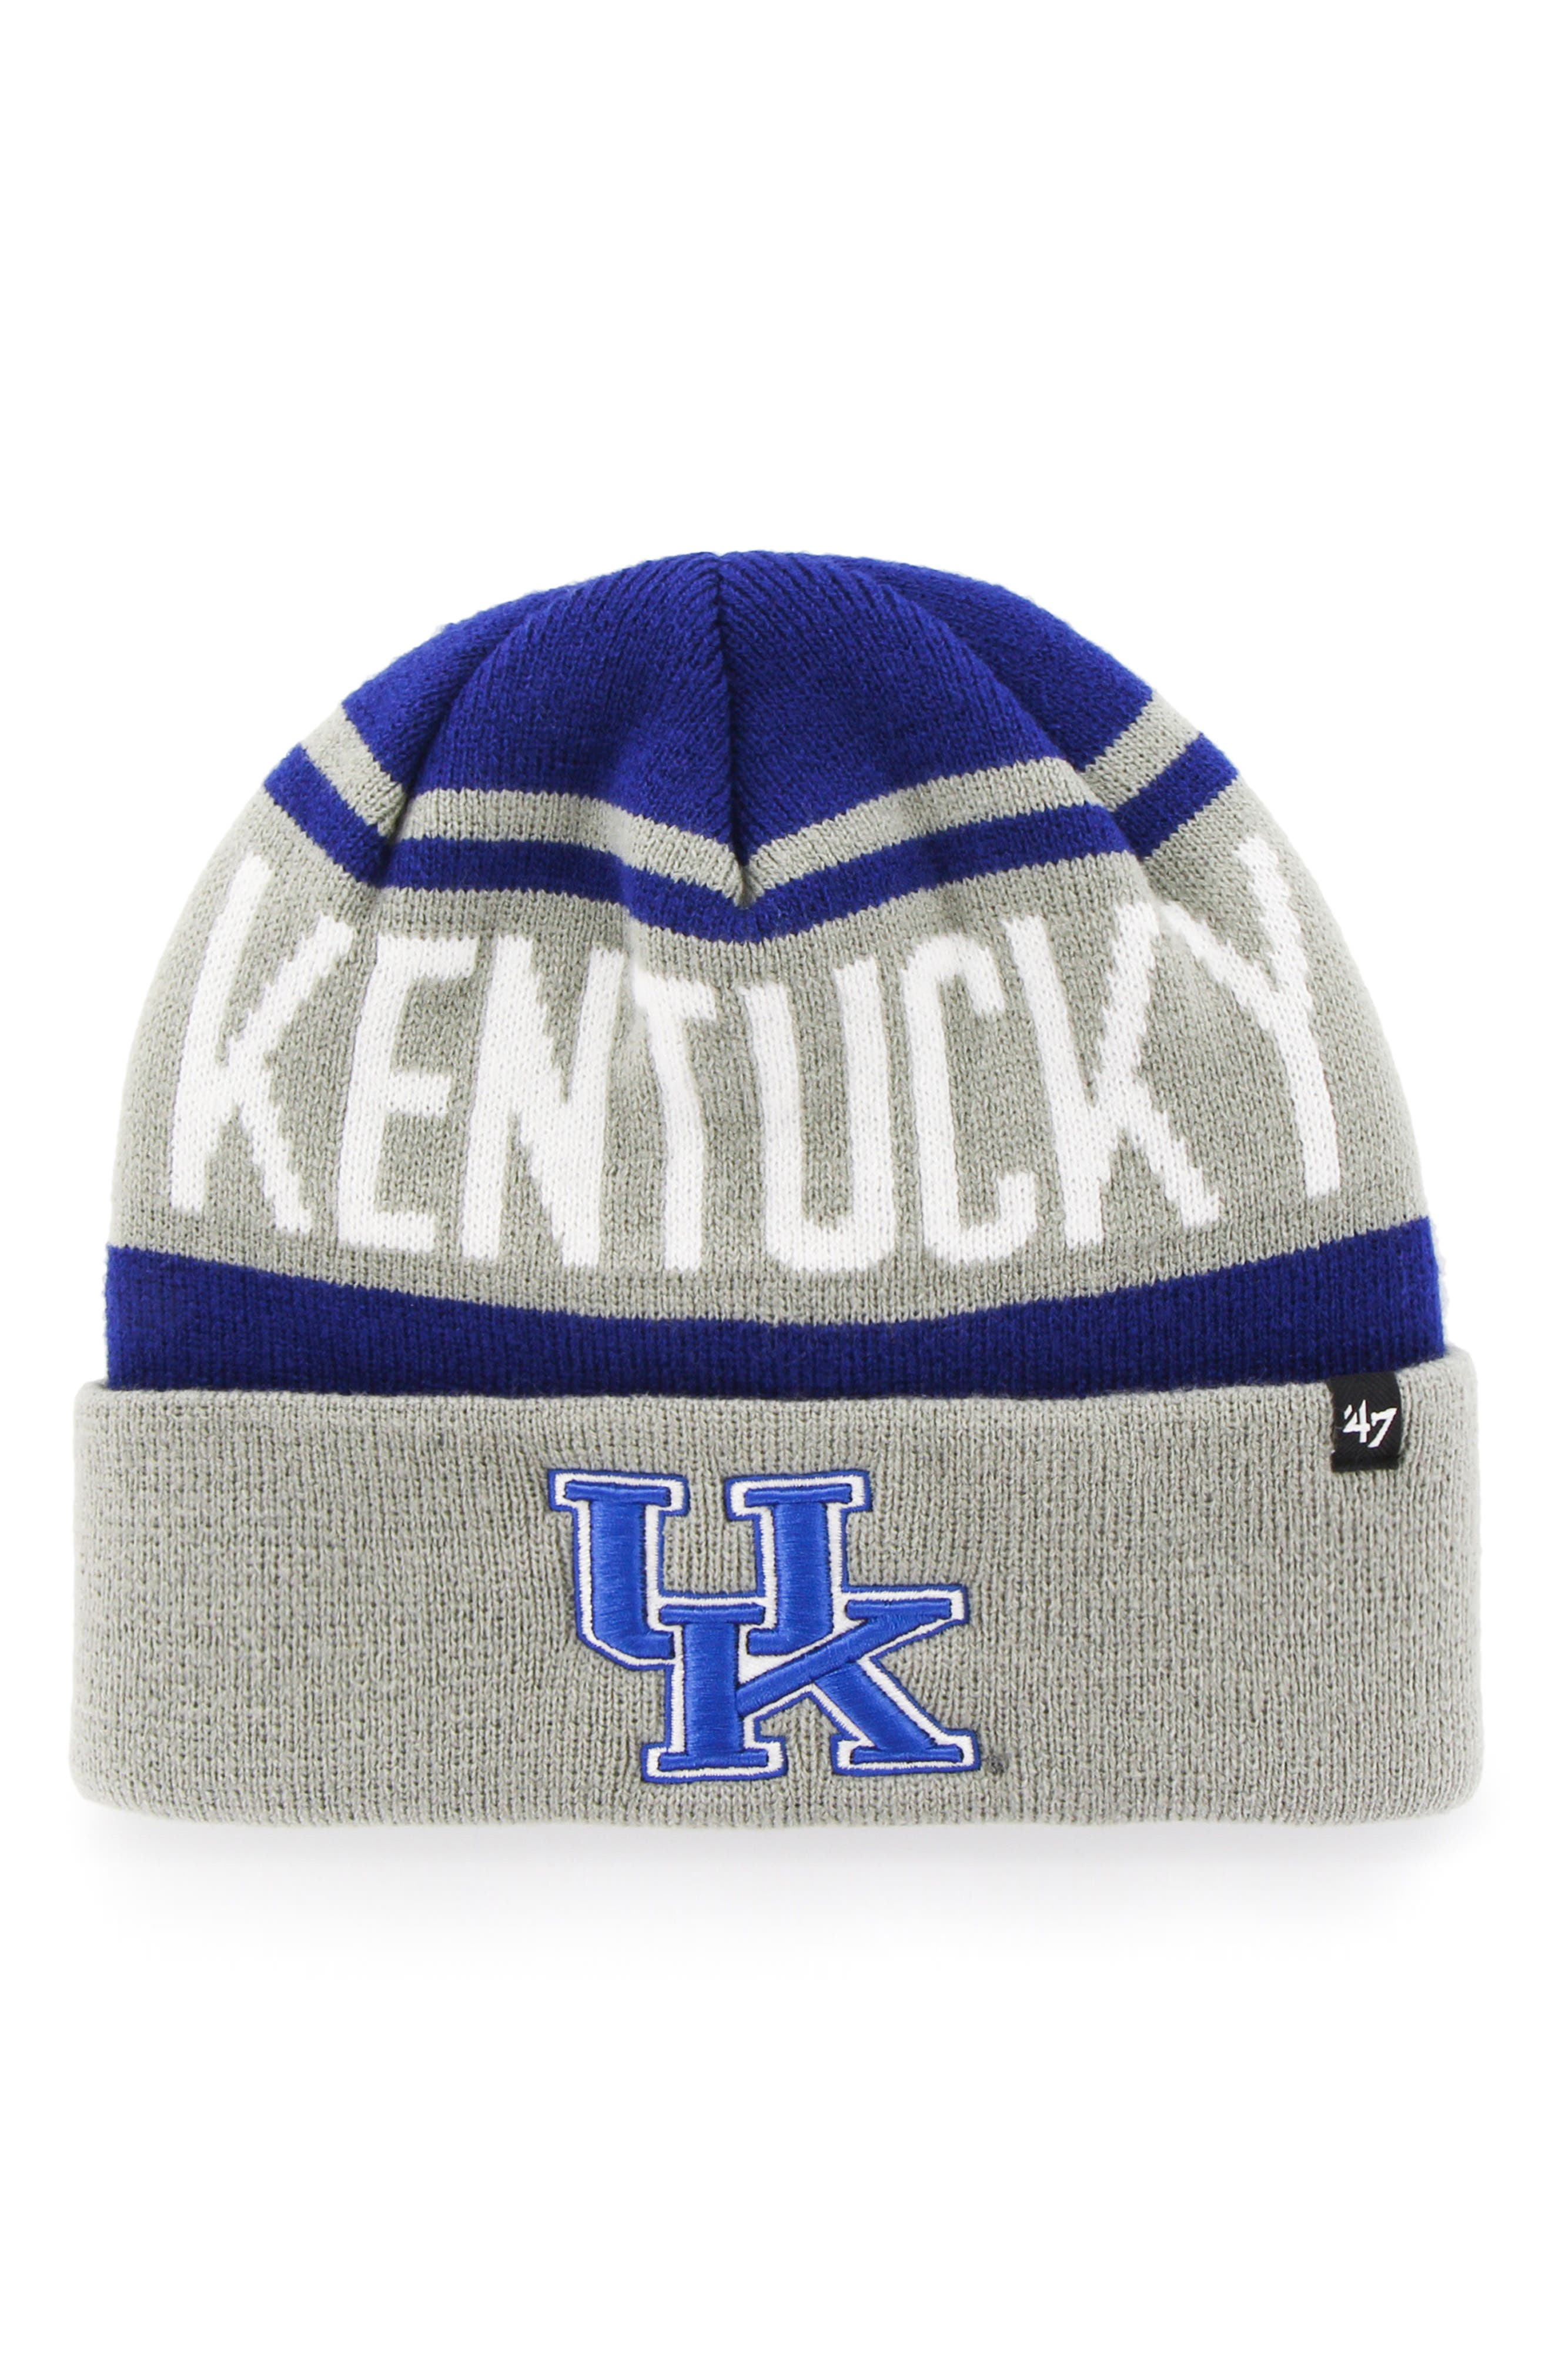 Alternate Image 1 Selected - 47 Brand University of Kentucky Knit Beanie